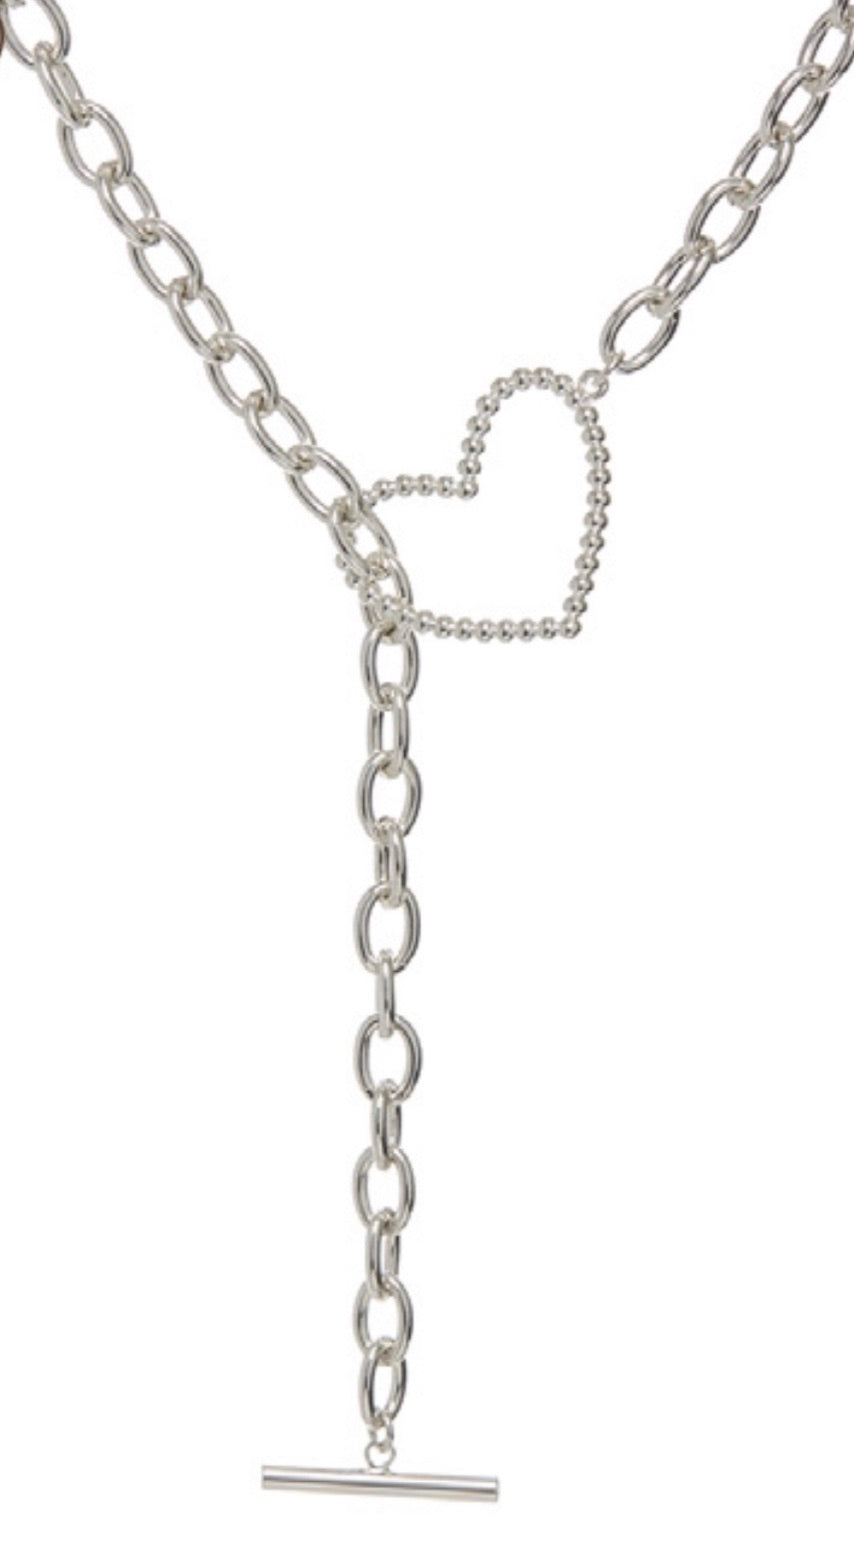 The Heart + Chain Lariat - Silver